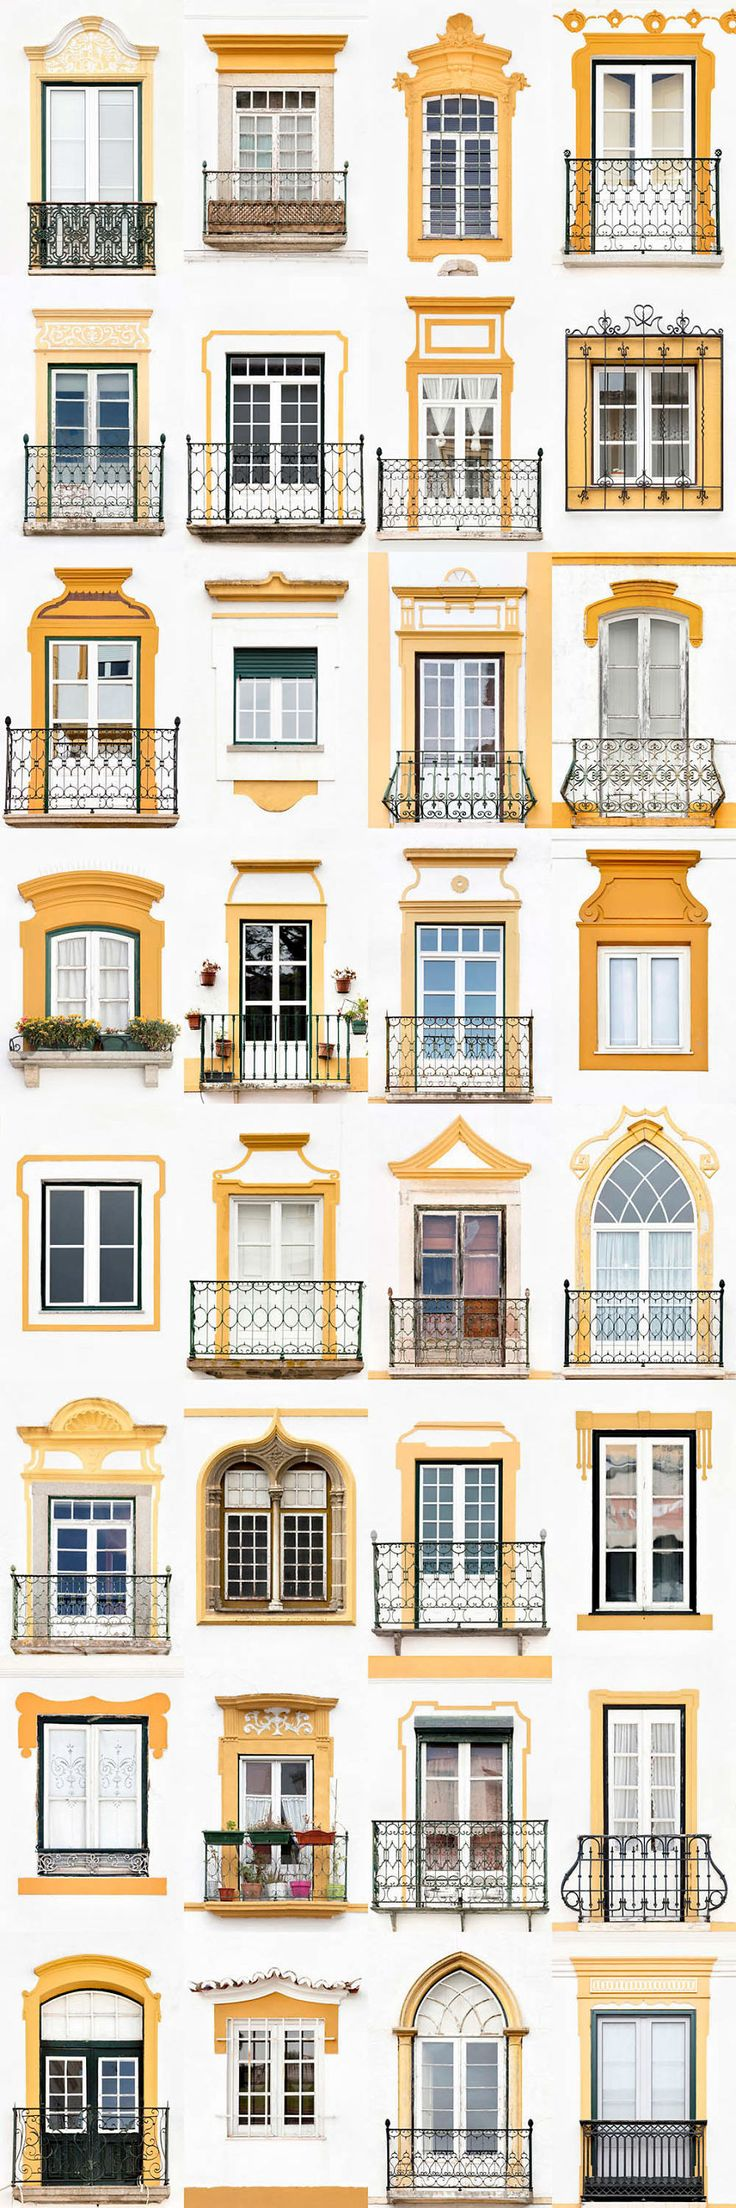 I Traveled All Over #Portugal To Photograph Windows, And Captured More Than 3200 Of Them - via BoredPanda 23-10-2017 | If you are planning a trip to Portugal, you can see which are the most beautiful cities to visit or what kind of architecture you like the most. Photo: Evora